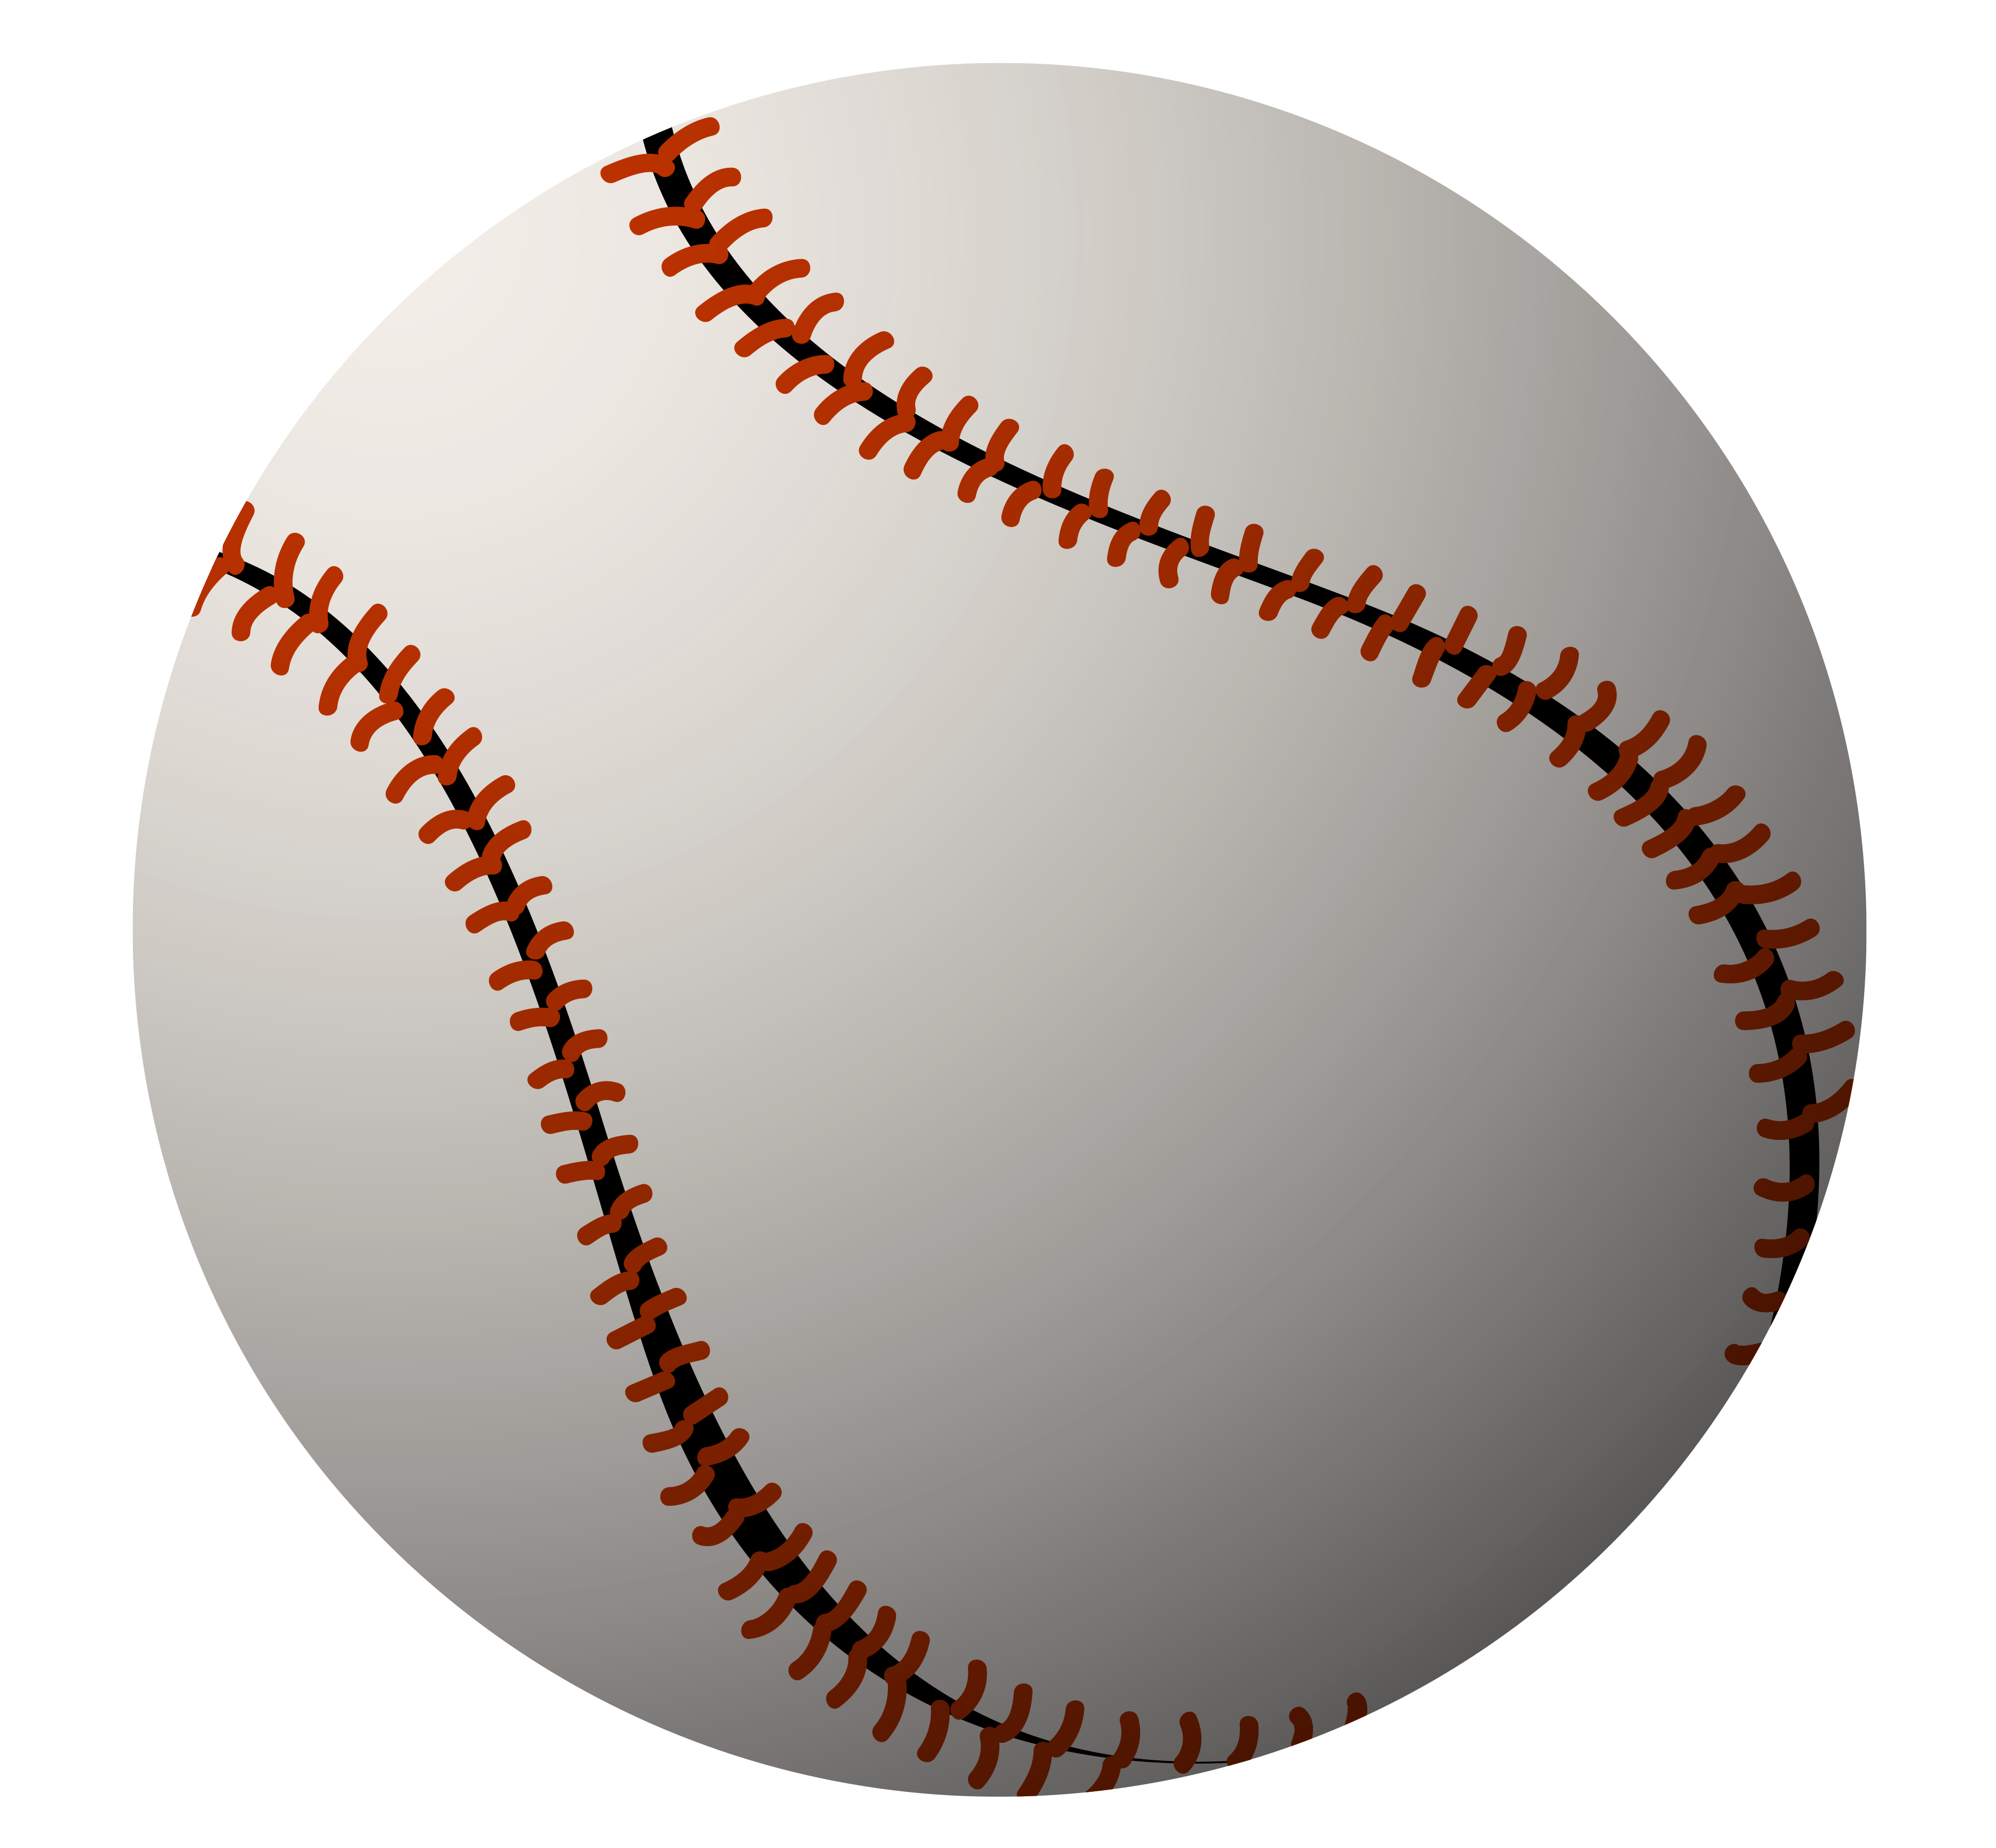 Baseball background png. Ball clipart image gallery